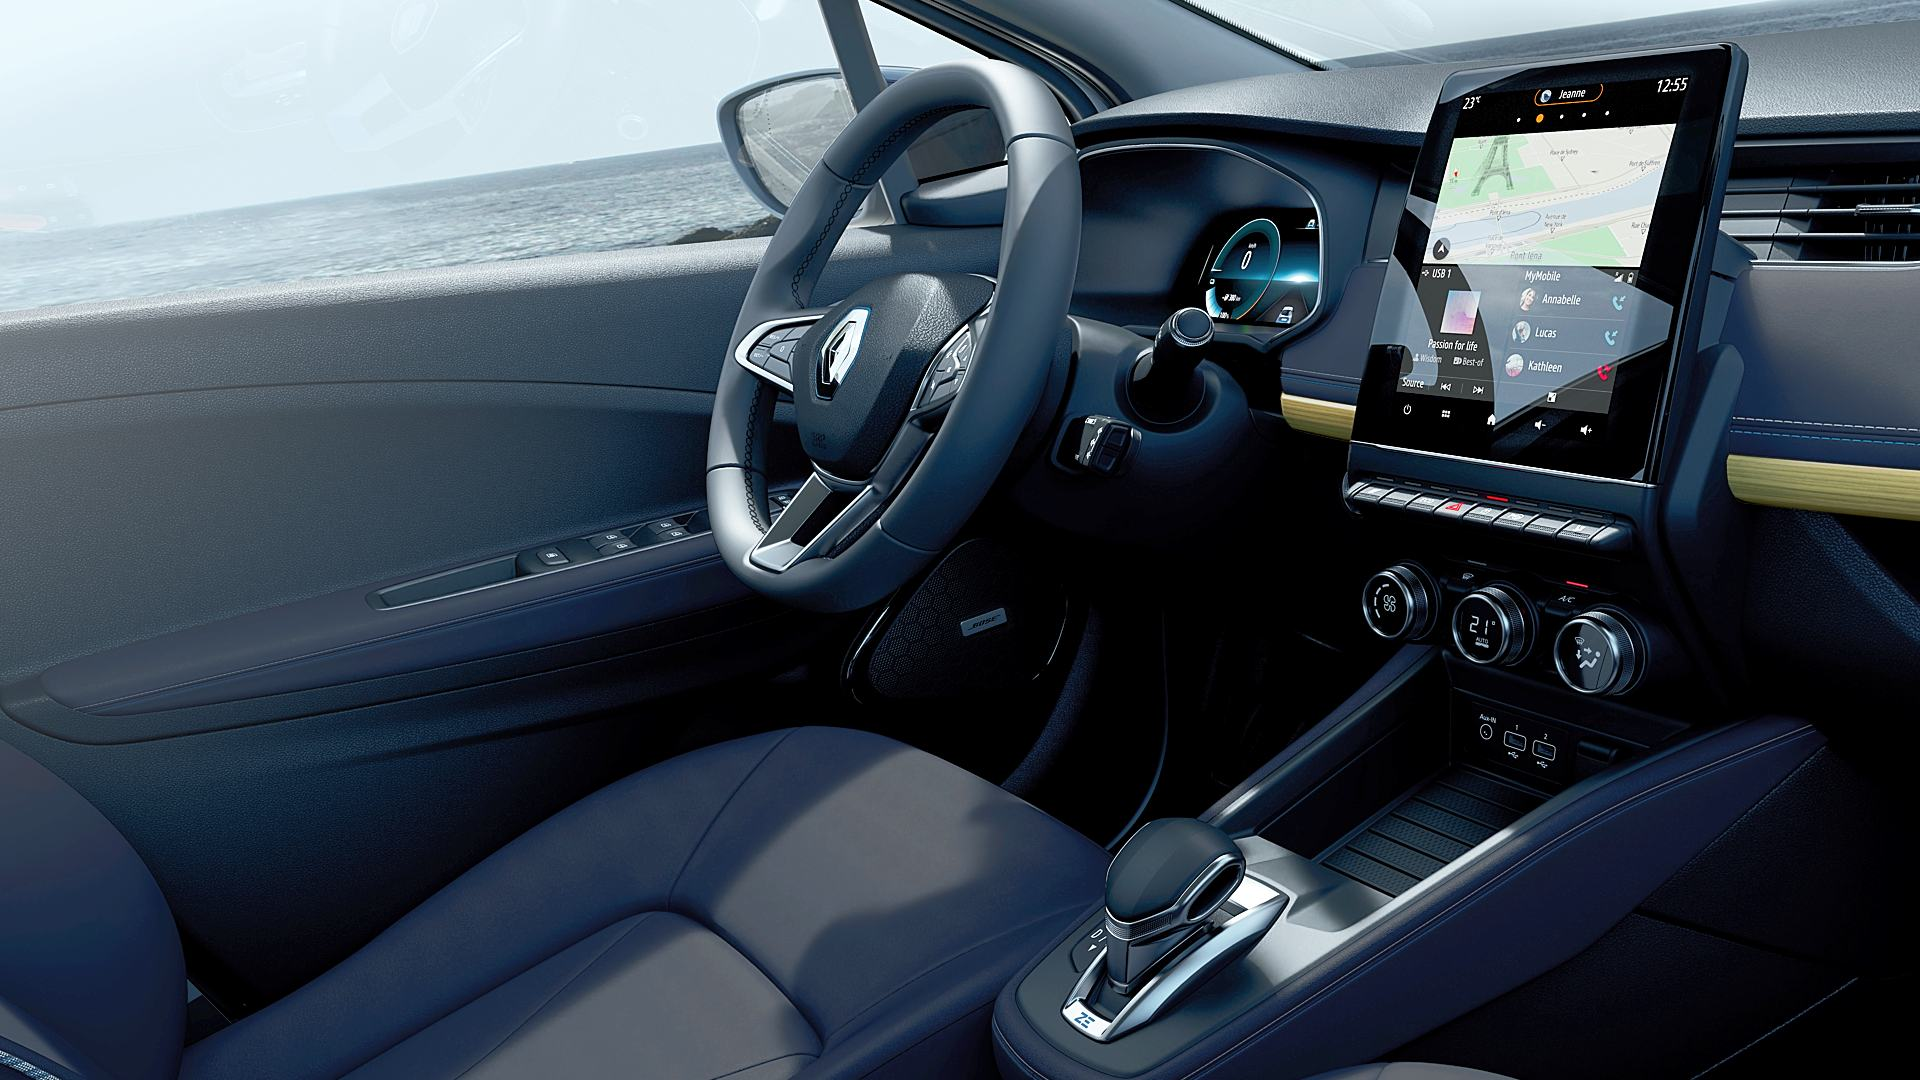 2020 Renault Zoe Electric Interior Images